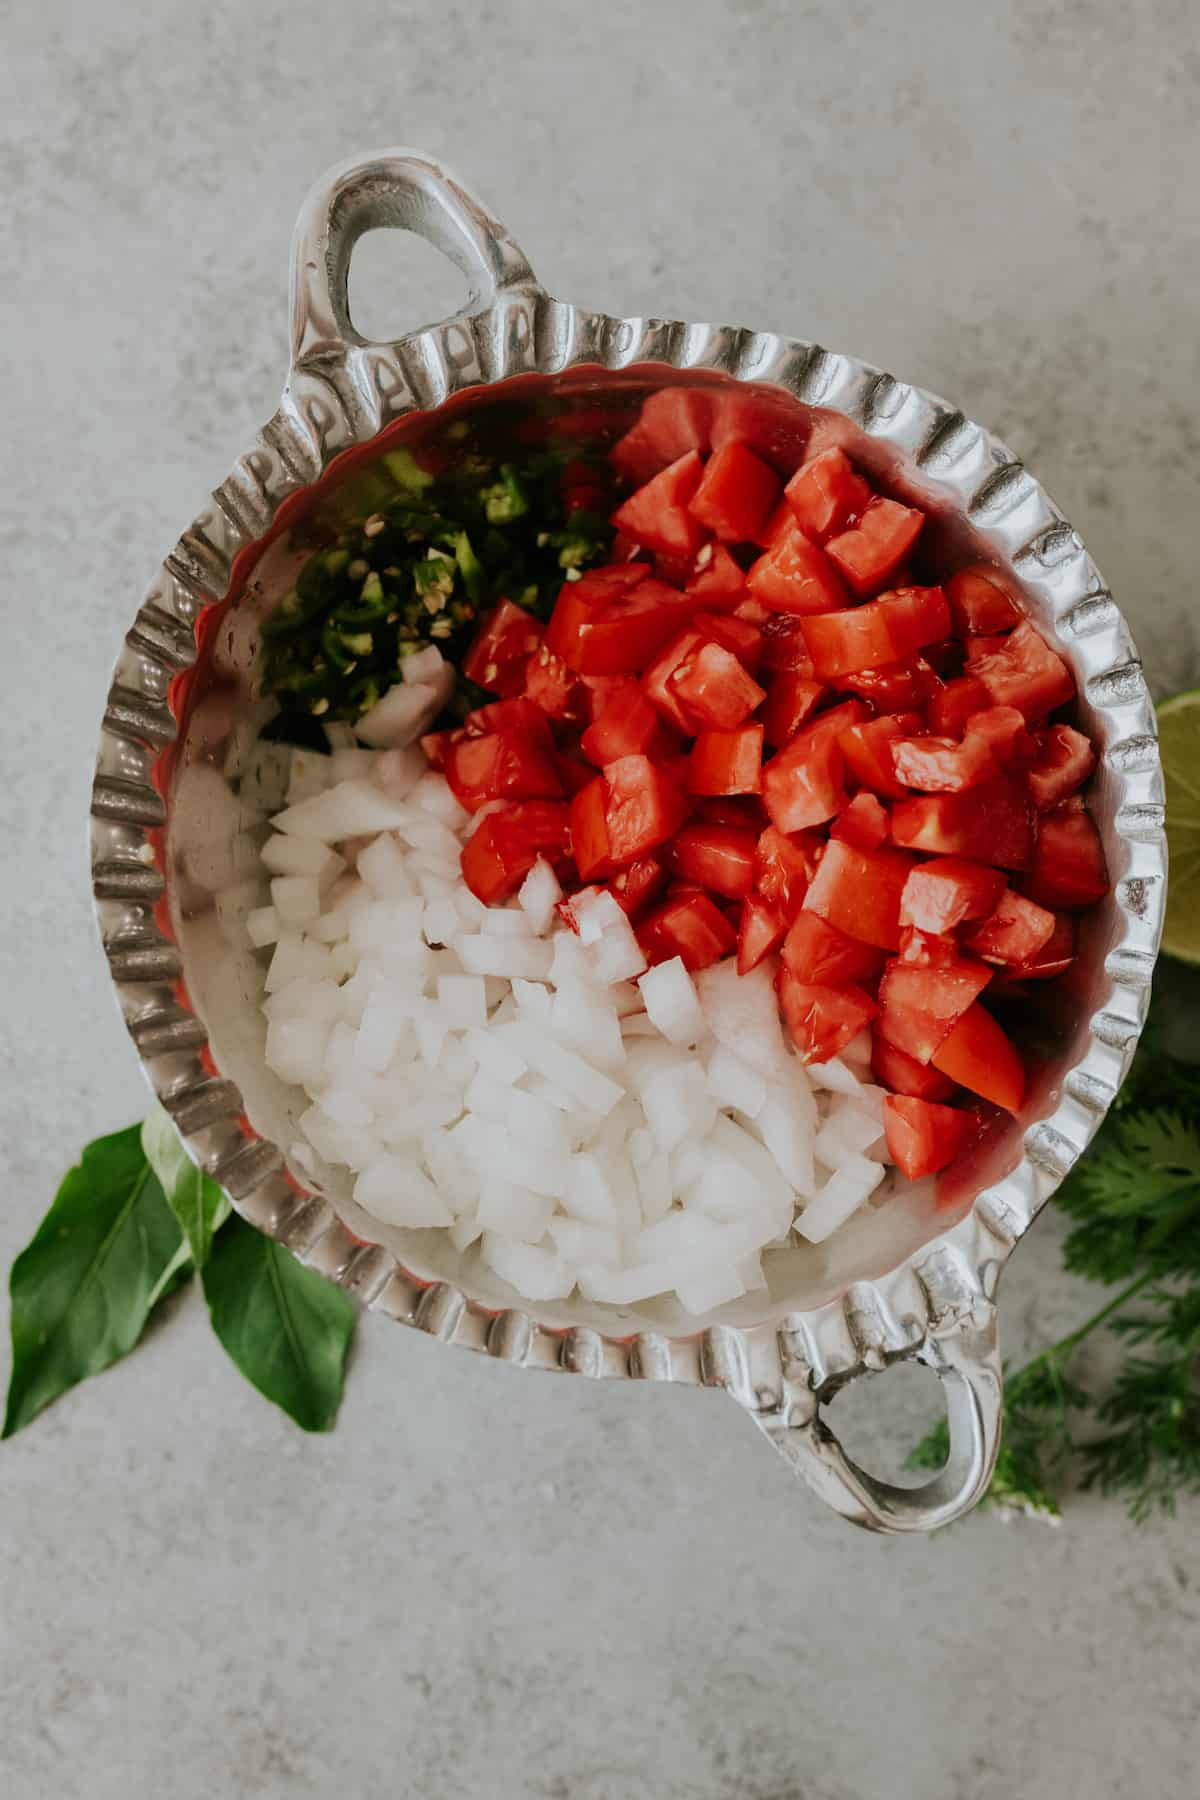 Chopped salsa bandera ingredients arranged in a large silver serving bowl with two handles